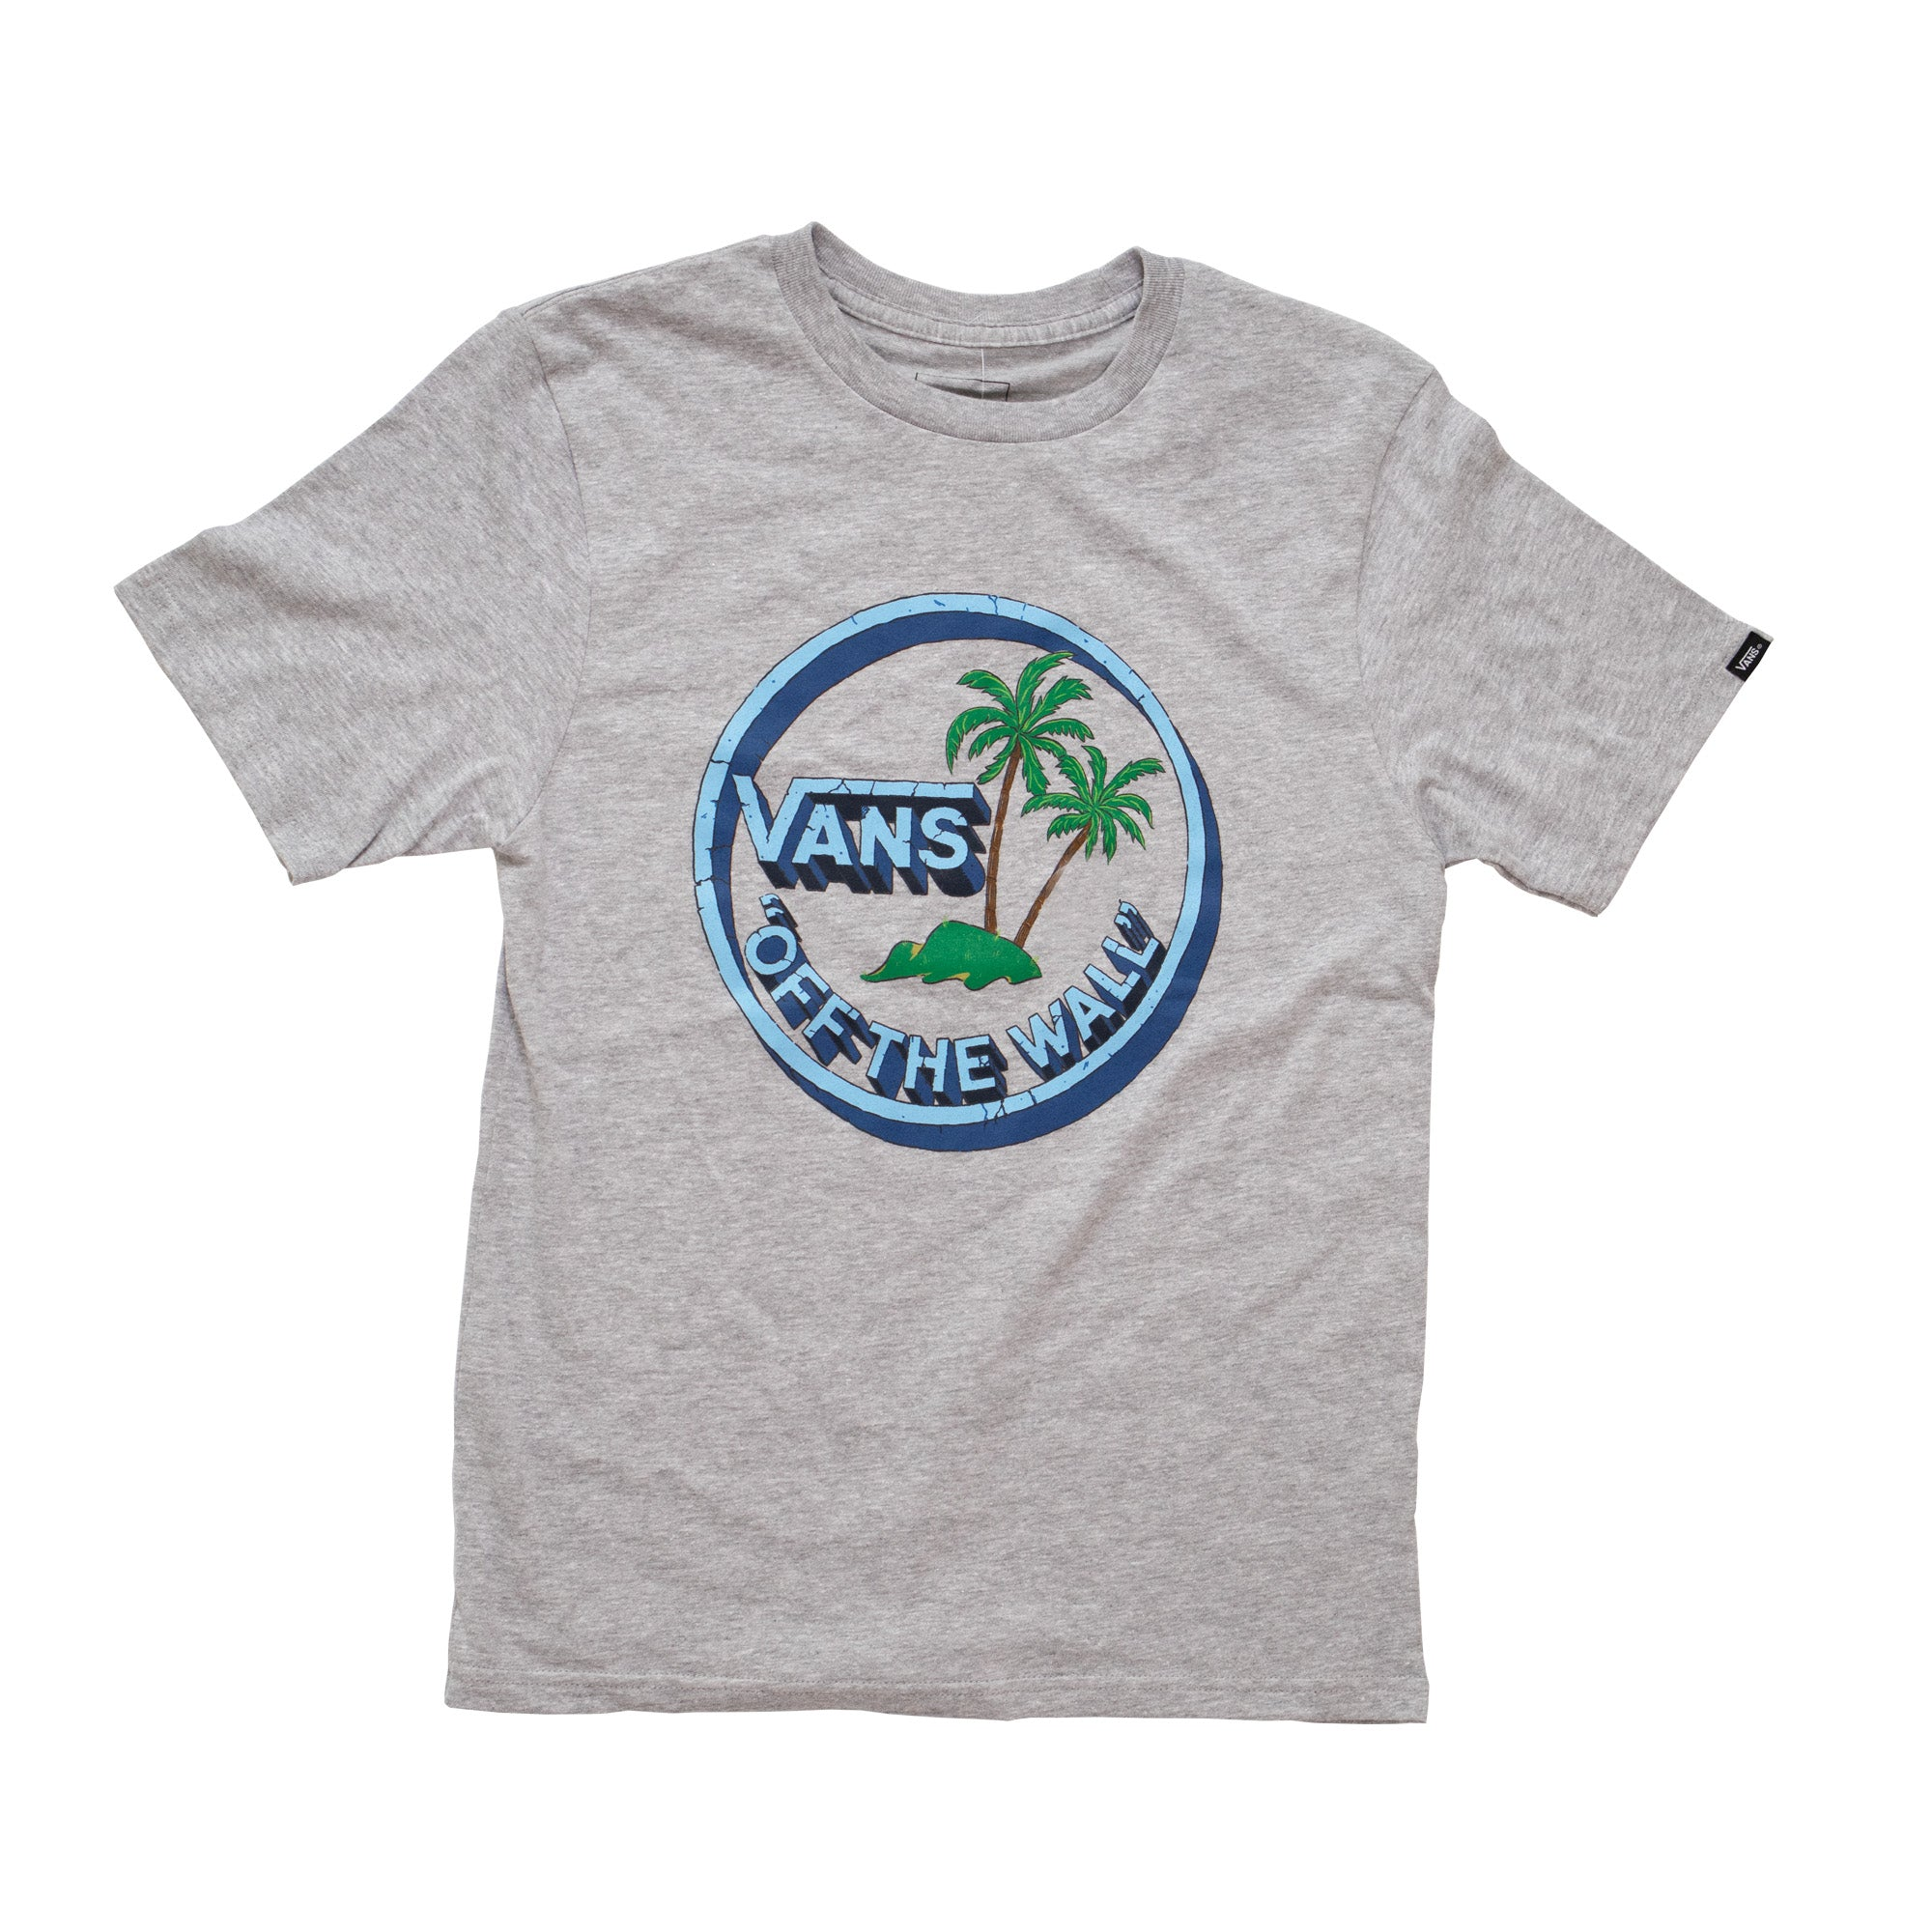 Vans Concrete Jungle Boy's S/S T-Shirt